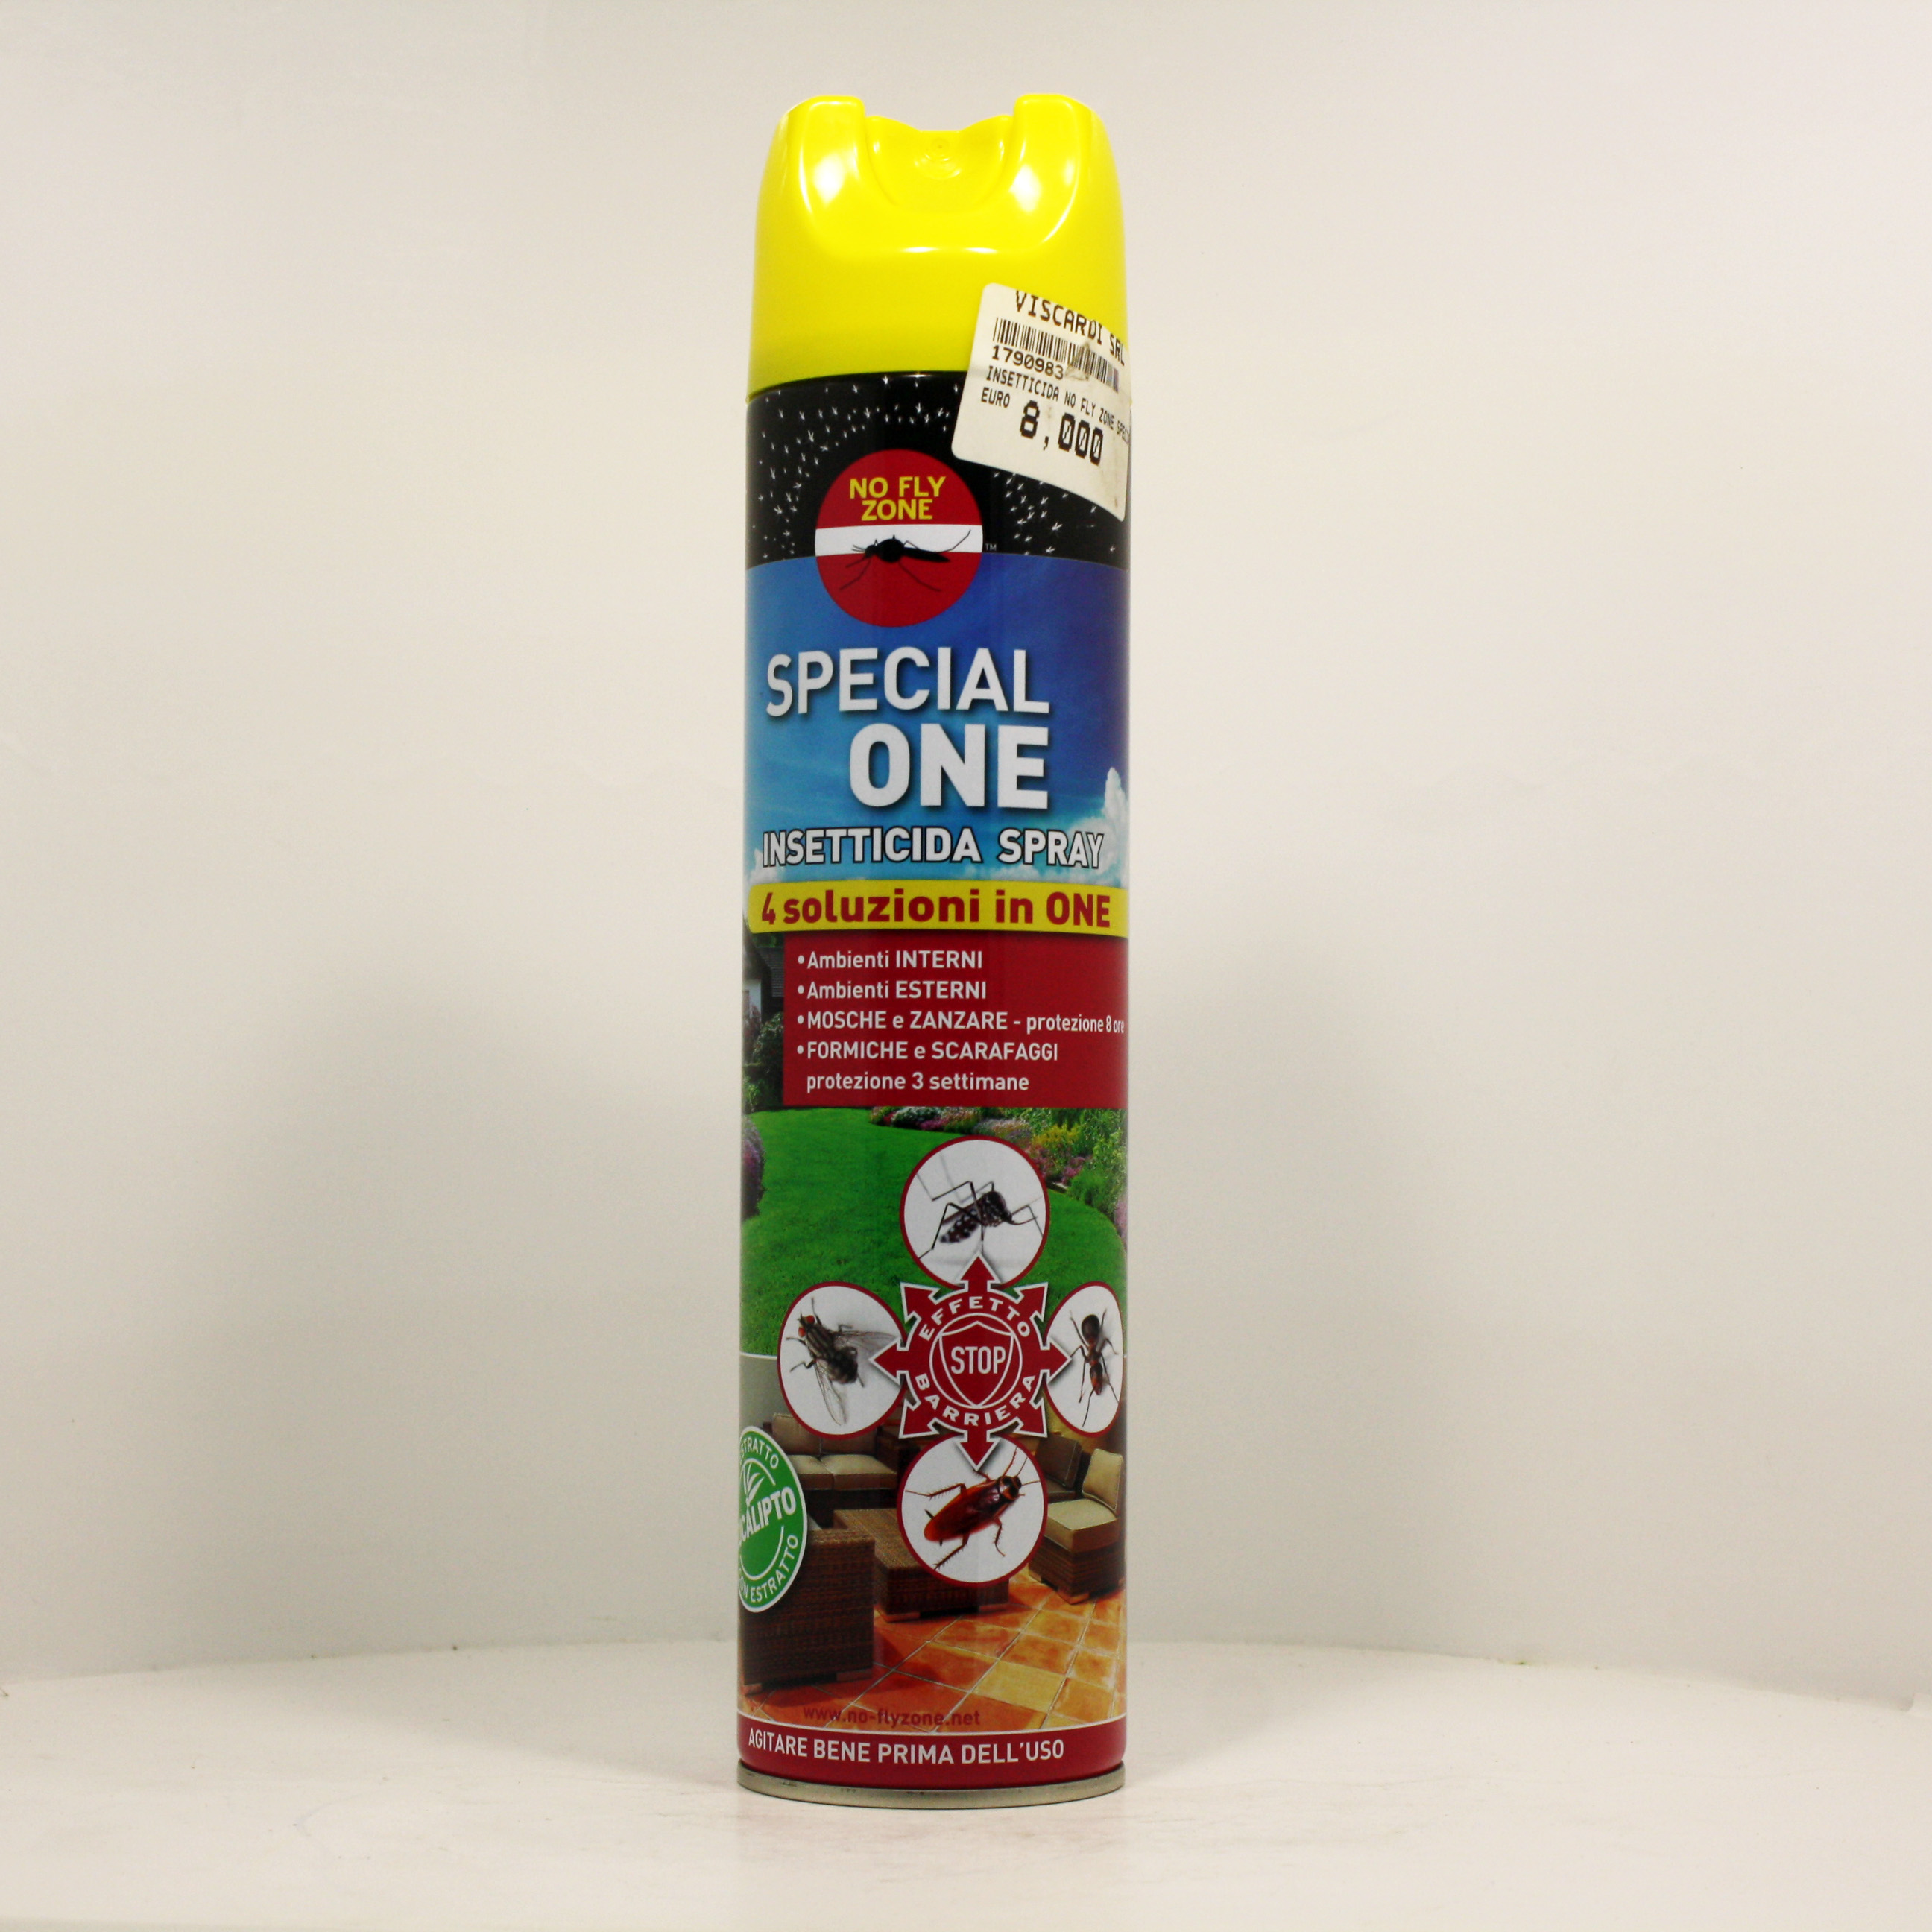 No fly zone special one insetticida spray 4 soluzioni in for Formiche volanti in casa